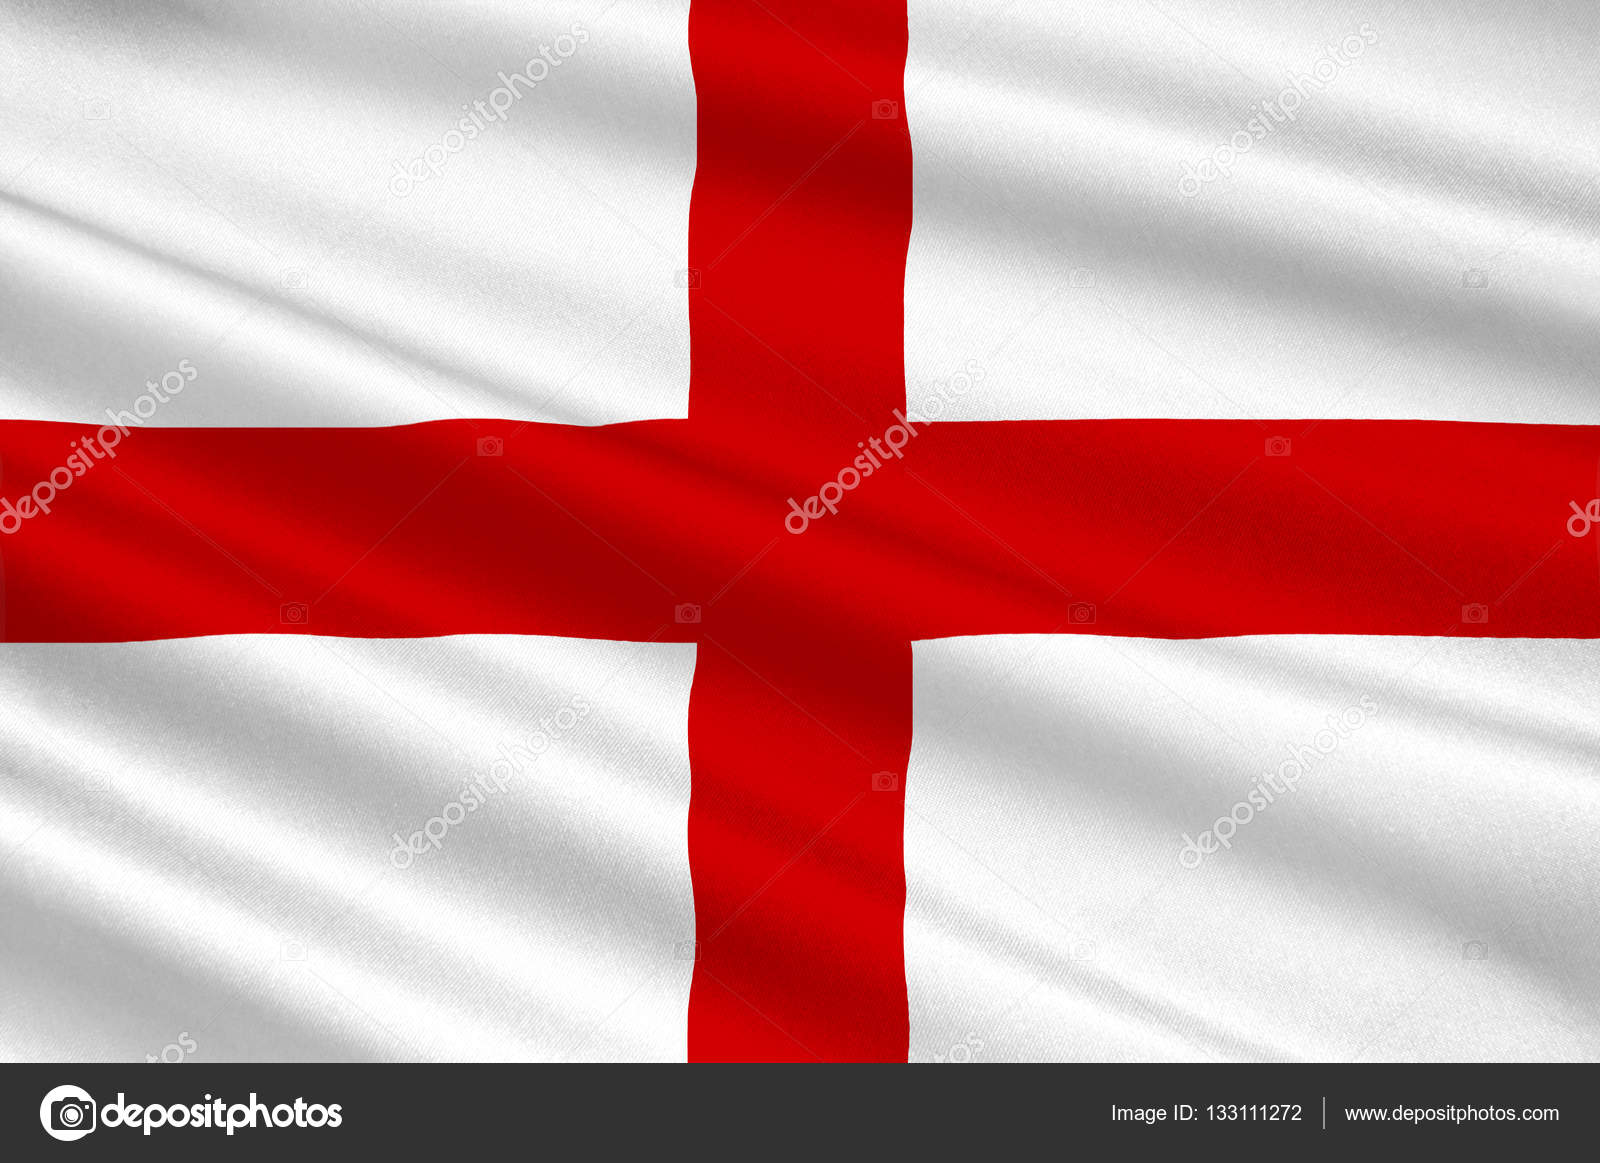 Flag Of Genoa Liguria Italy Stock Photo C Dique Bk Ru 133111272